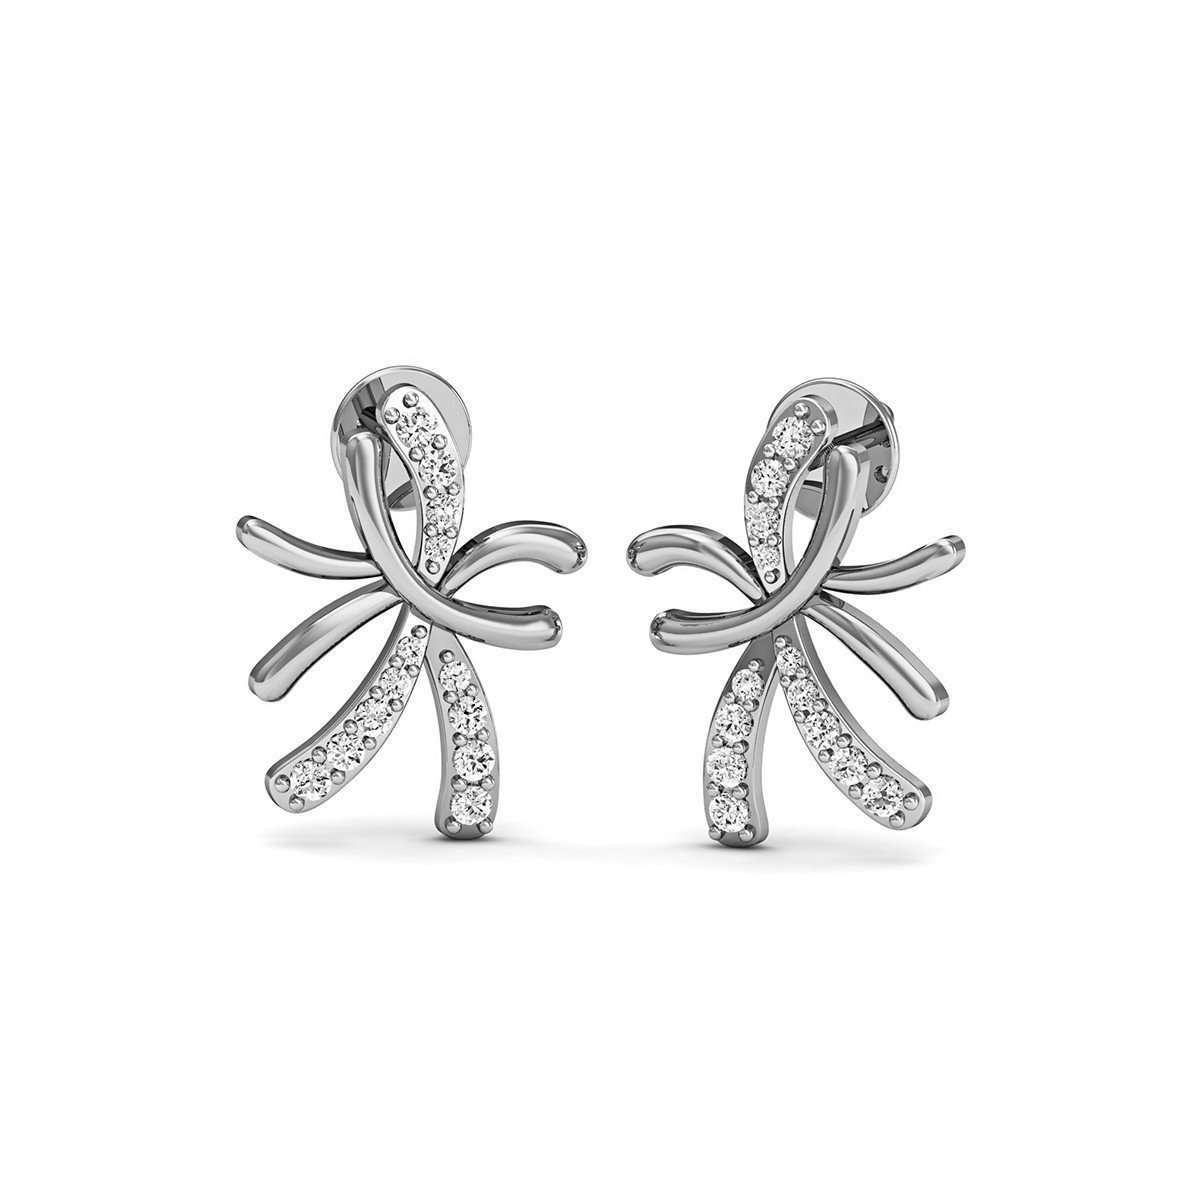 10kt White Gold and Diamond Floral Pave Earrings-Diamoire Jewels-JewelStreet US